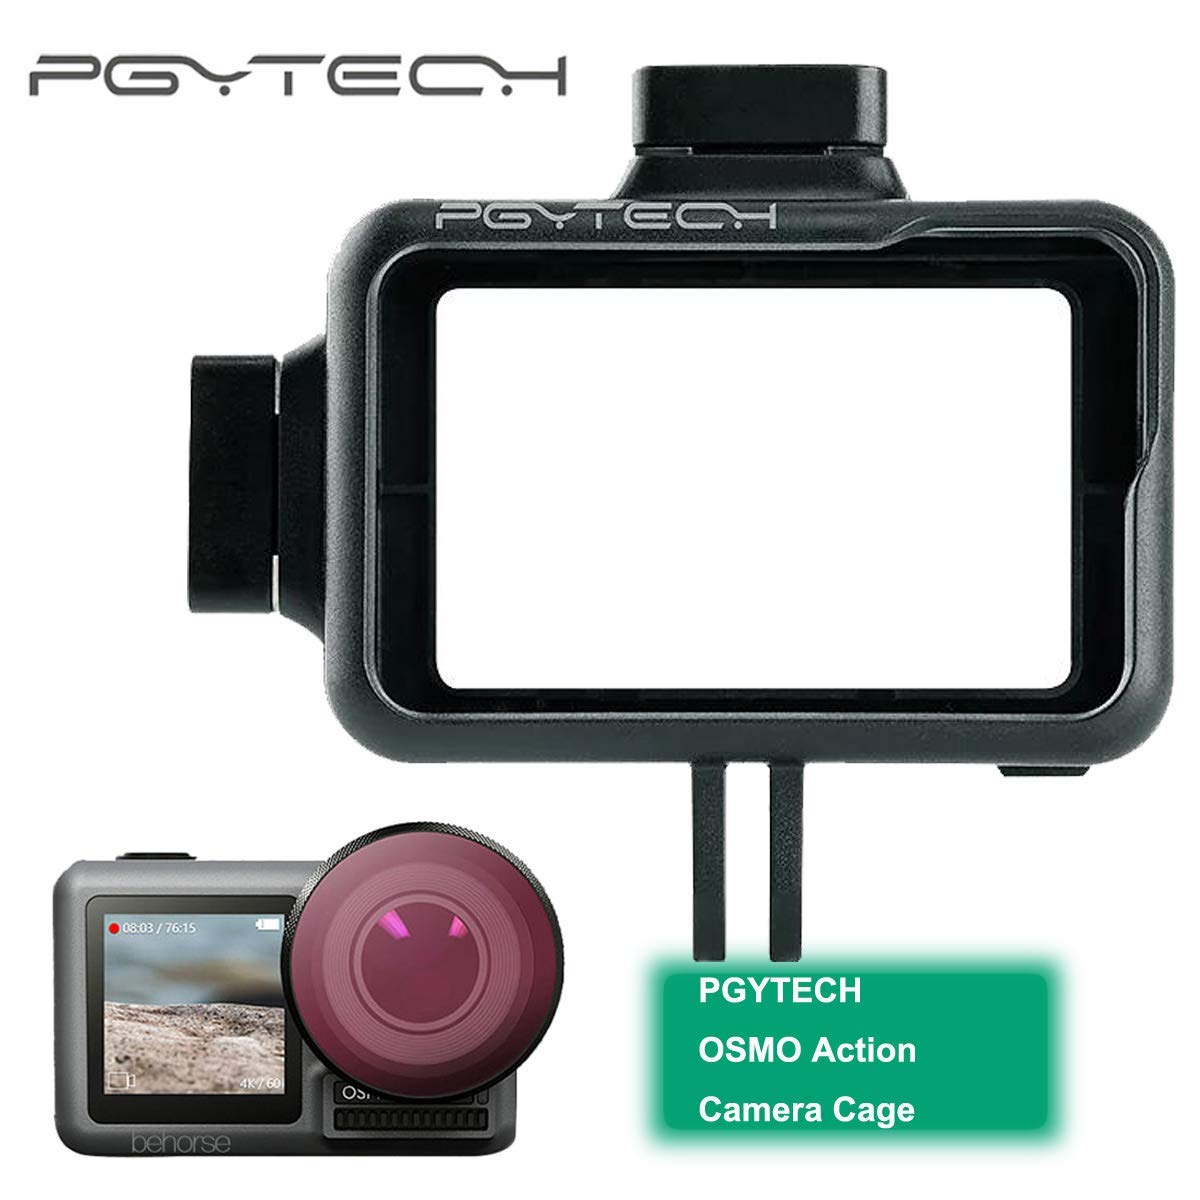 DSstyles OSMO Action Camera Accessories Camera Cage by DSstyles (Image #1)